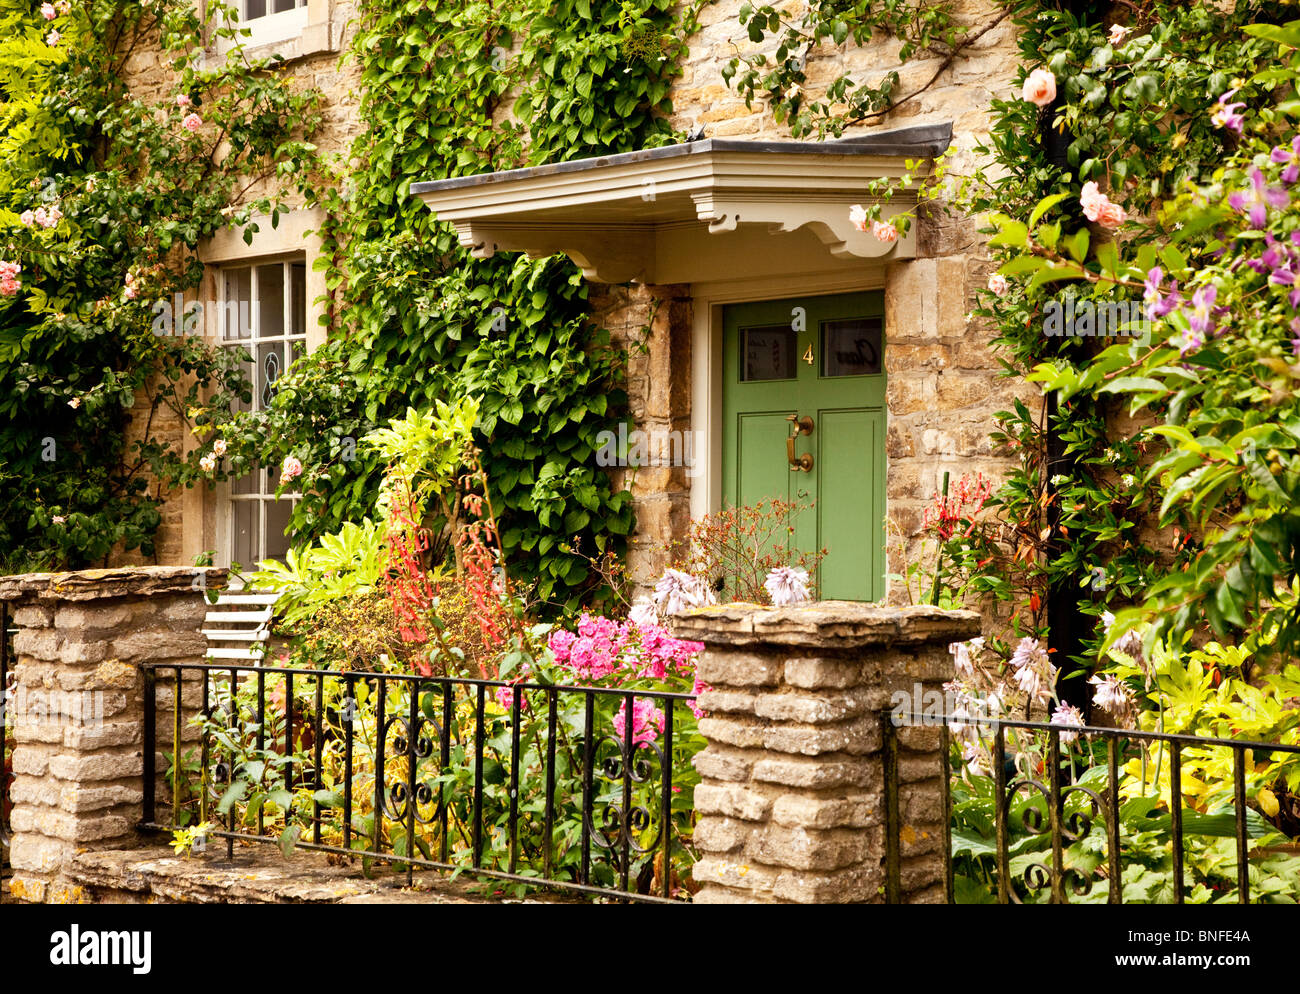 Pretty summer front garden of a typical Cotswold stone house in the Wiltshire village of Sherston, England, UK - Stock Image